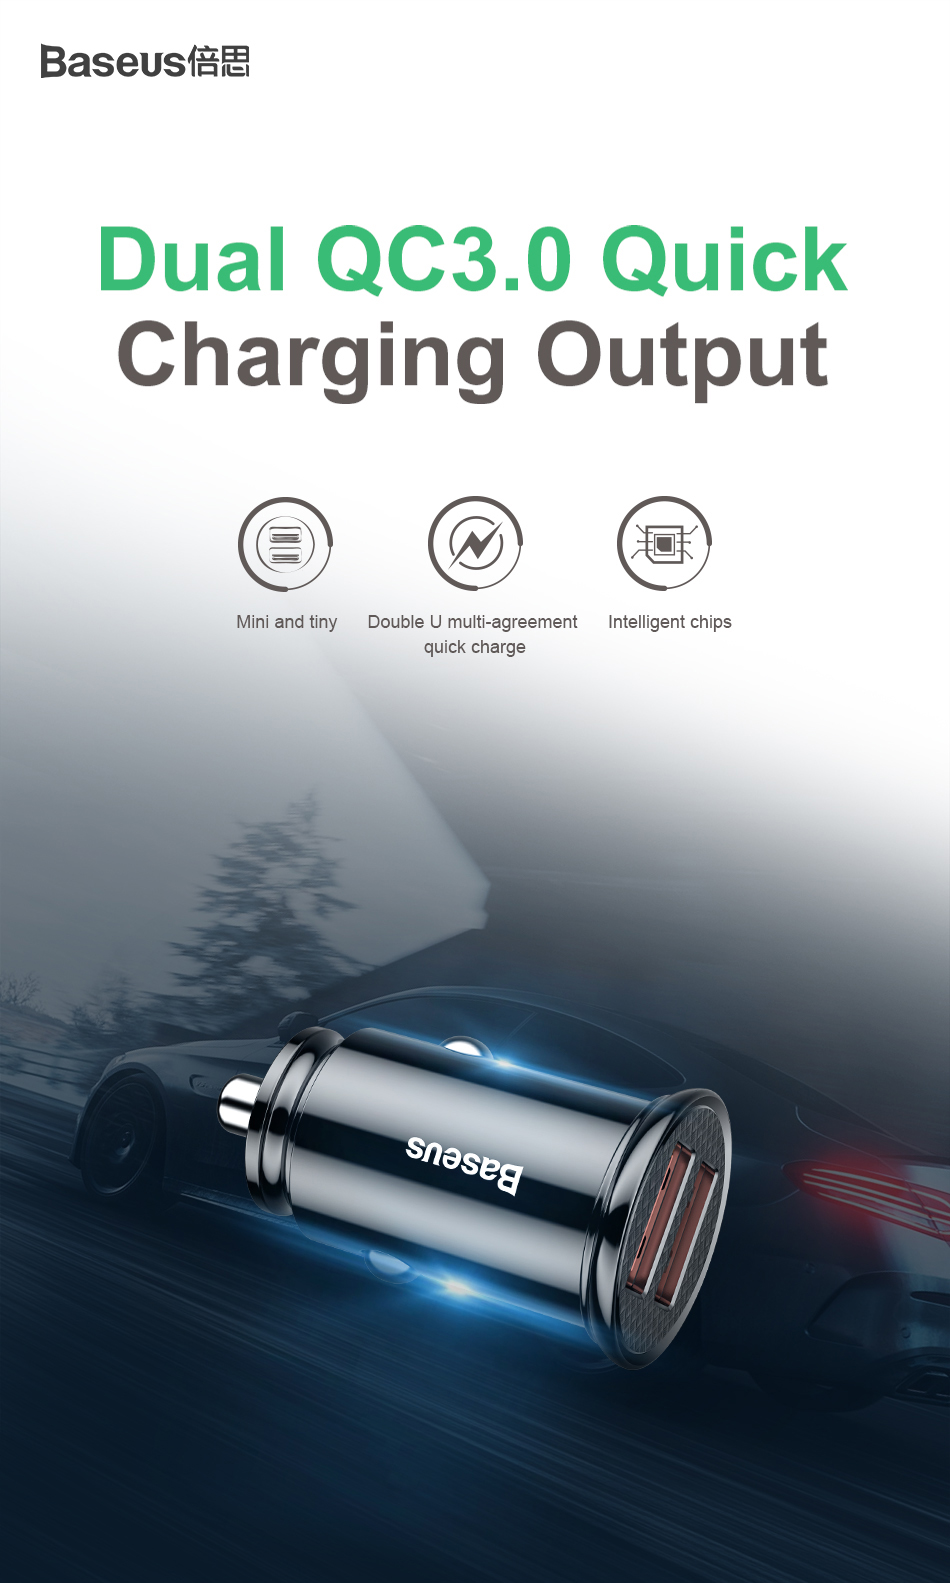 Baseus Quick Charge 4.0 3.0 USB Car Charger For Xiaomi mi 9 Huawei P30 Pro QC4.0 QC3.0 QC 5A Fast PD Car Charging Phone Charger-in Car Chargers from Cellphones & Telecommunications on Aliexpress.com | Alibaba Group 15